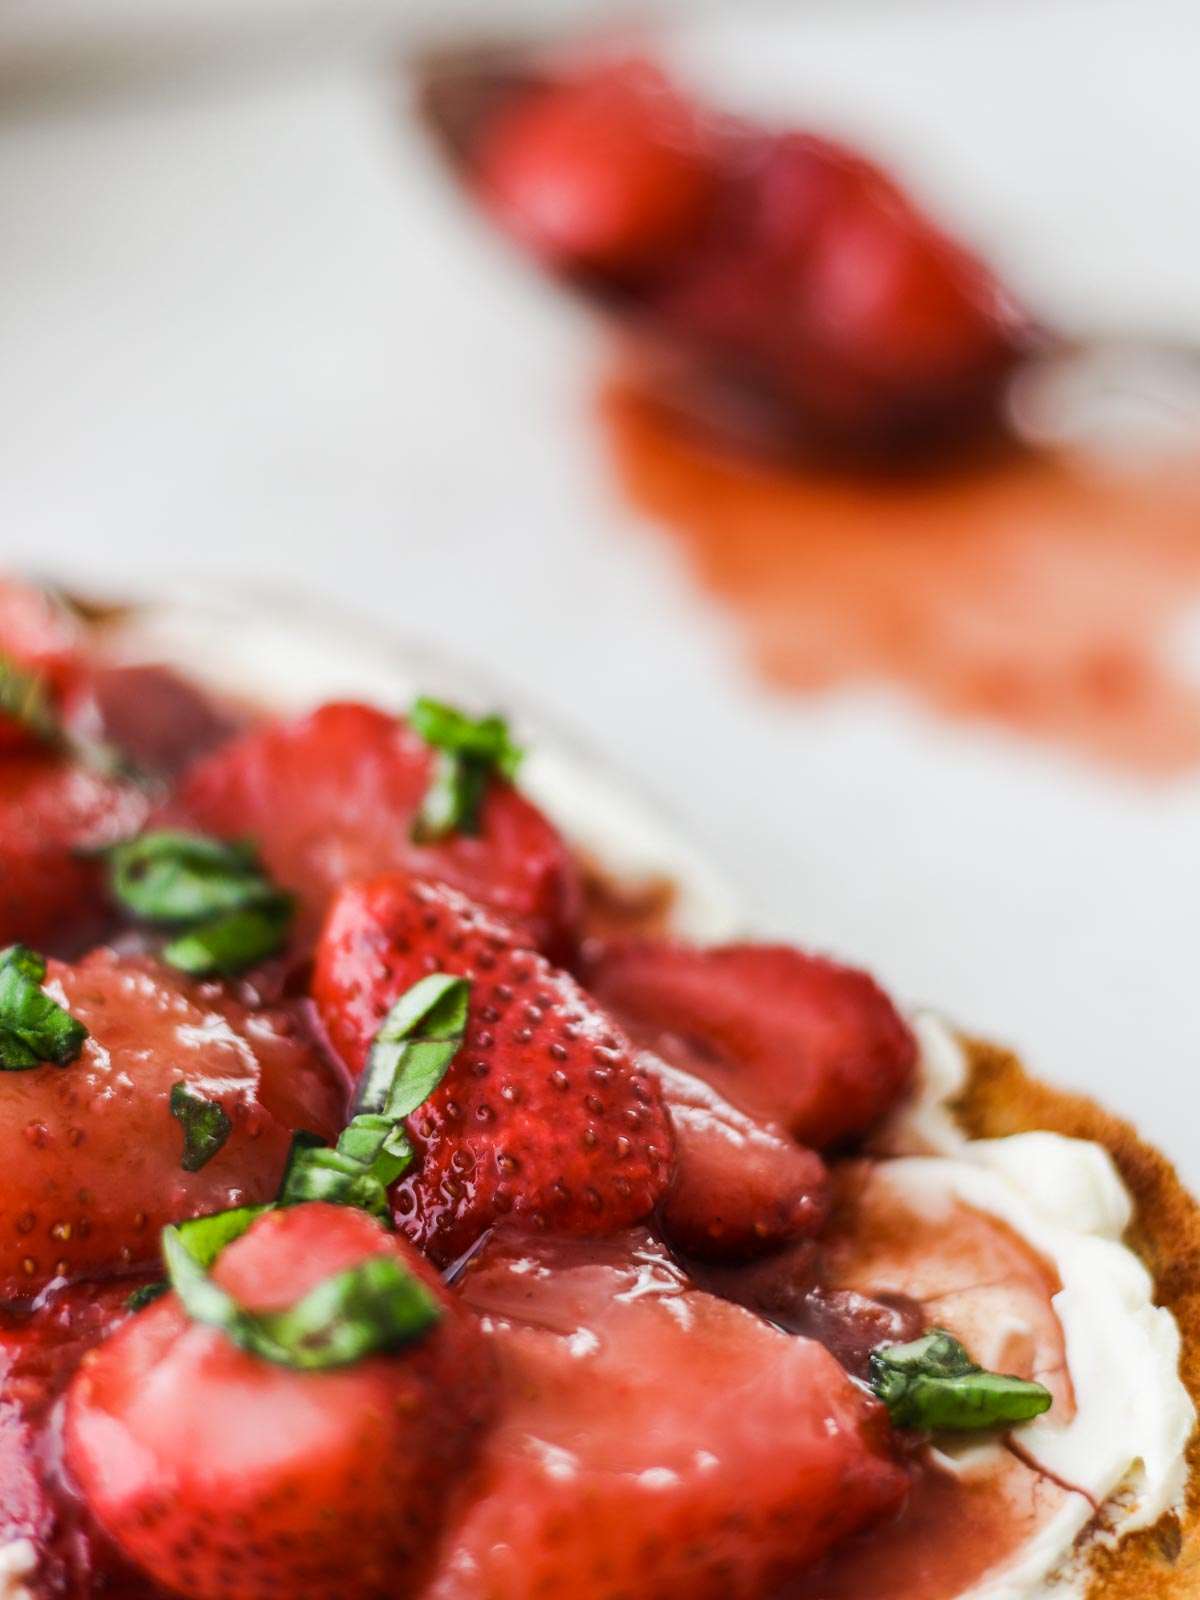 Balsamic Strawberries on toast with basil